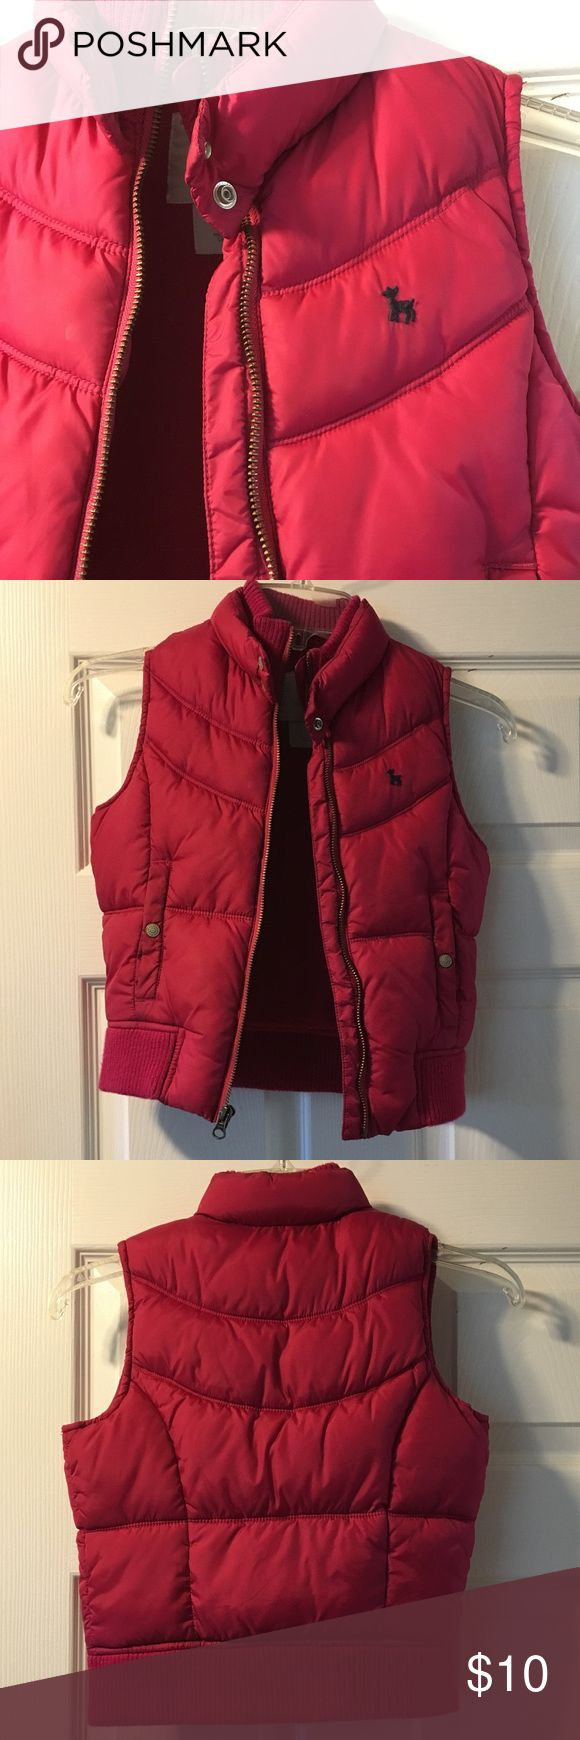 Old Navy Girls Puffer Vest Size Medium Old Navy Girls Puffer vest. Size Medium. Worn just a handful of times. Great condition Old Navy Jackets & Coats Vests